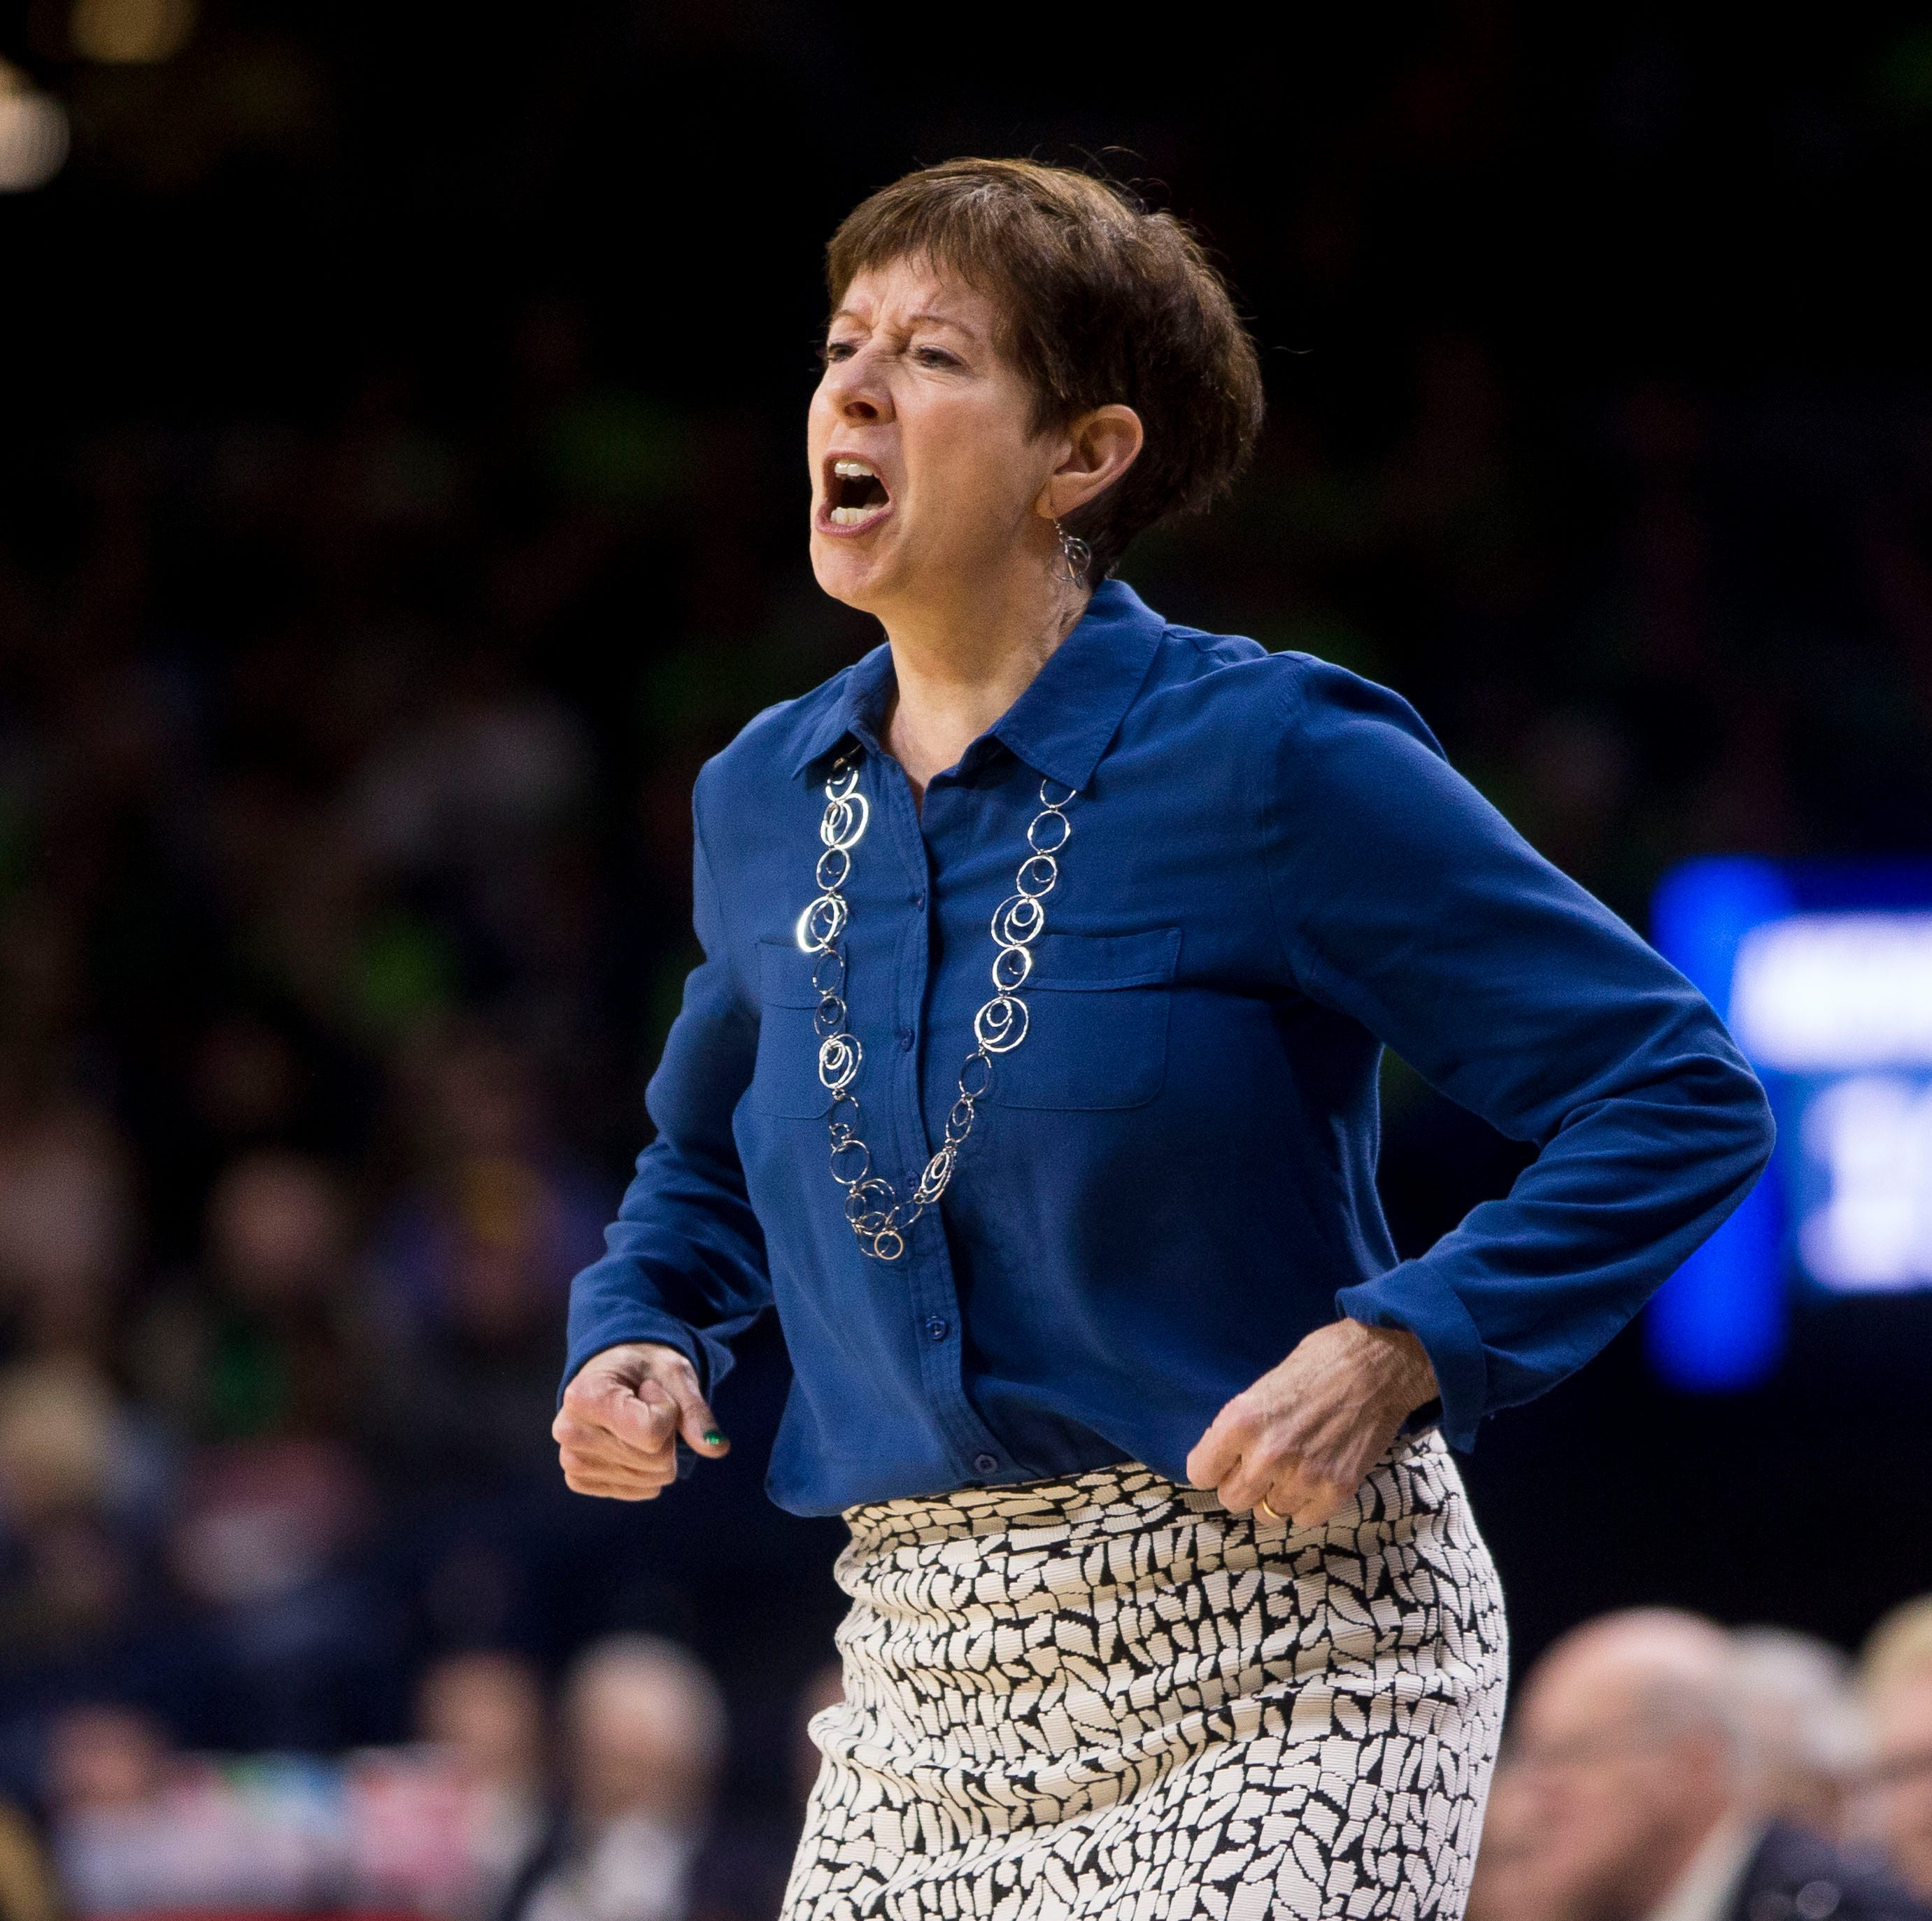 Notre Dame's Muffet McGraw won't take the bait as Geno Auriemma throws more barbs